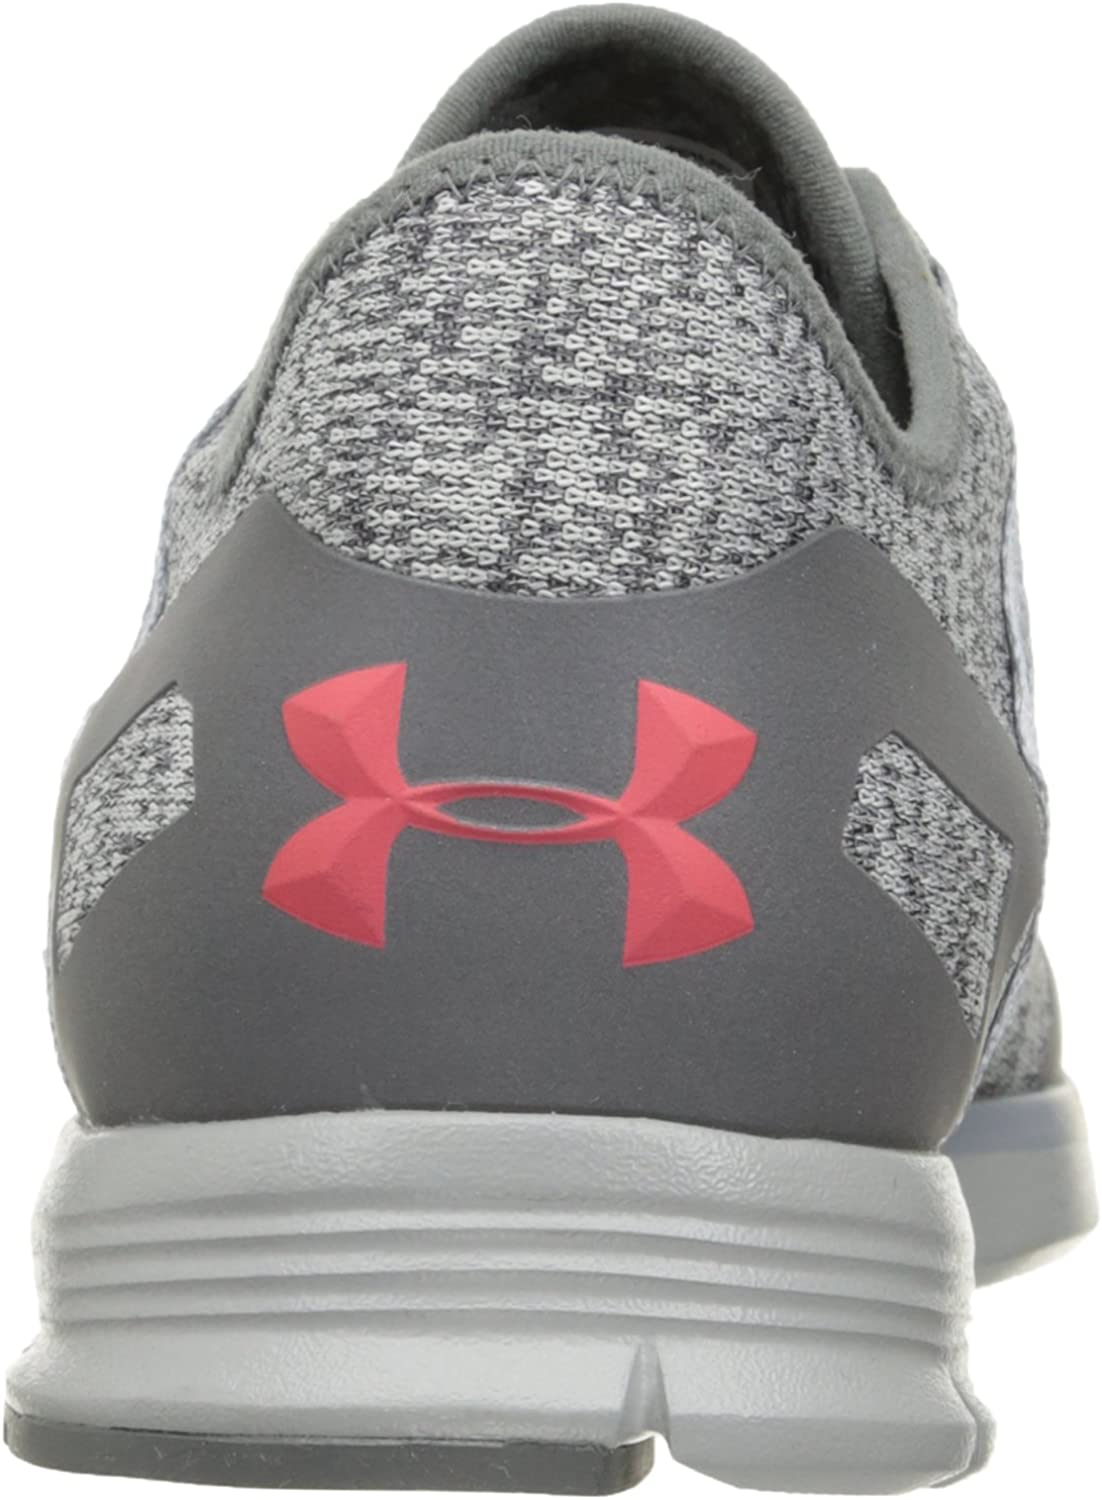 Under Armour Women's Charged All-Around Neutral Cross-Trainer Shoe Rhino Gray (076)/Steel